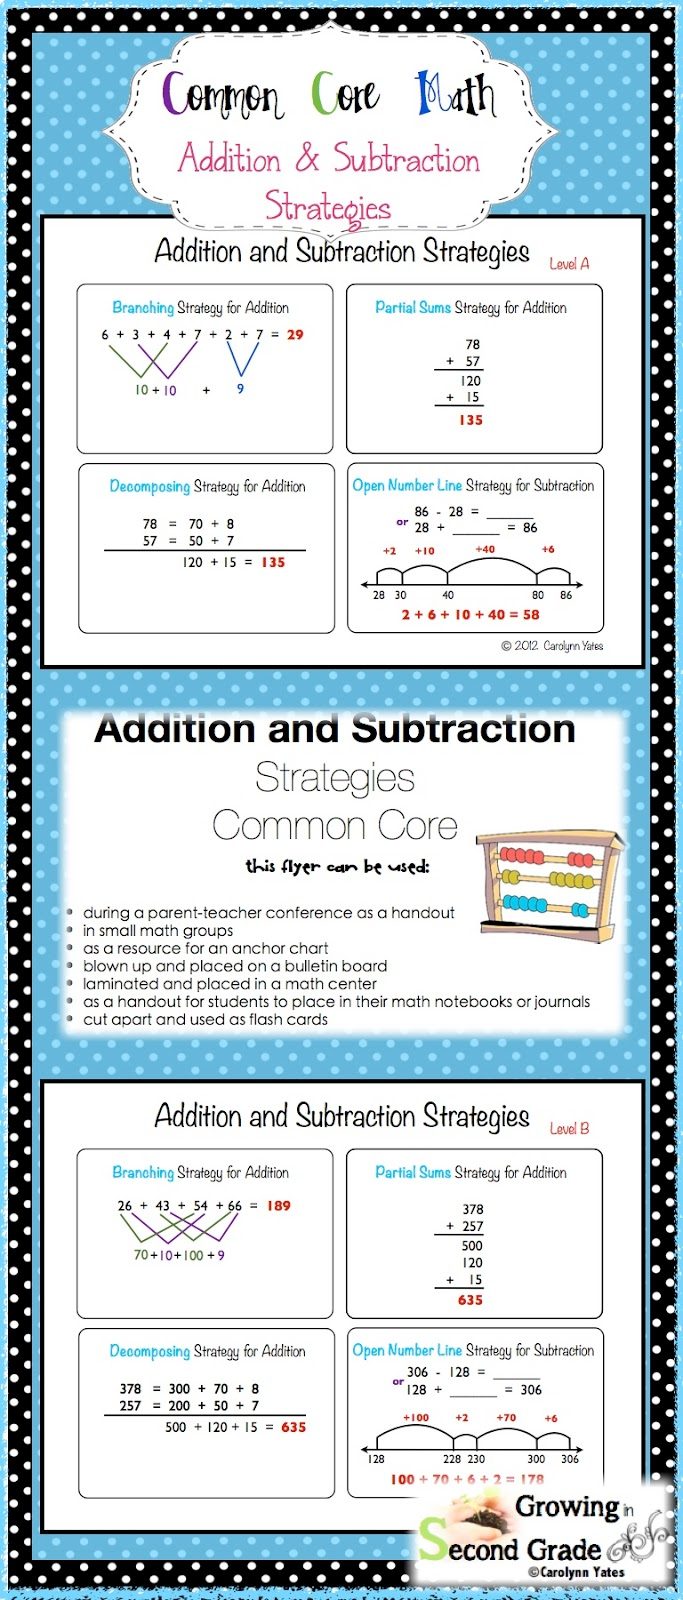 https://www.teacherspayteachers.com/Product/Mental-Math-Strategies-for-Addition-and-Subtraction-Common-Core-484424